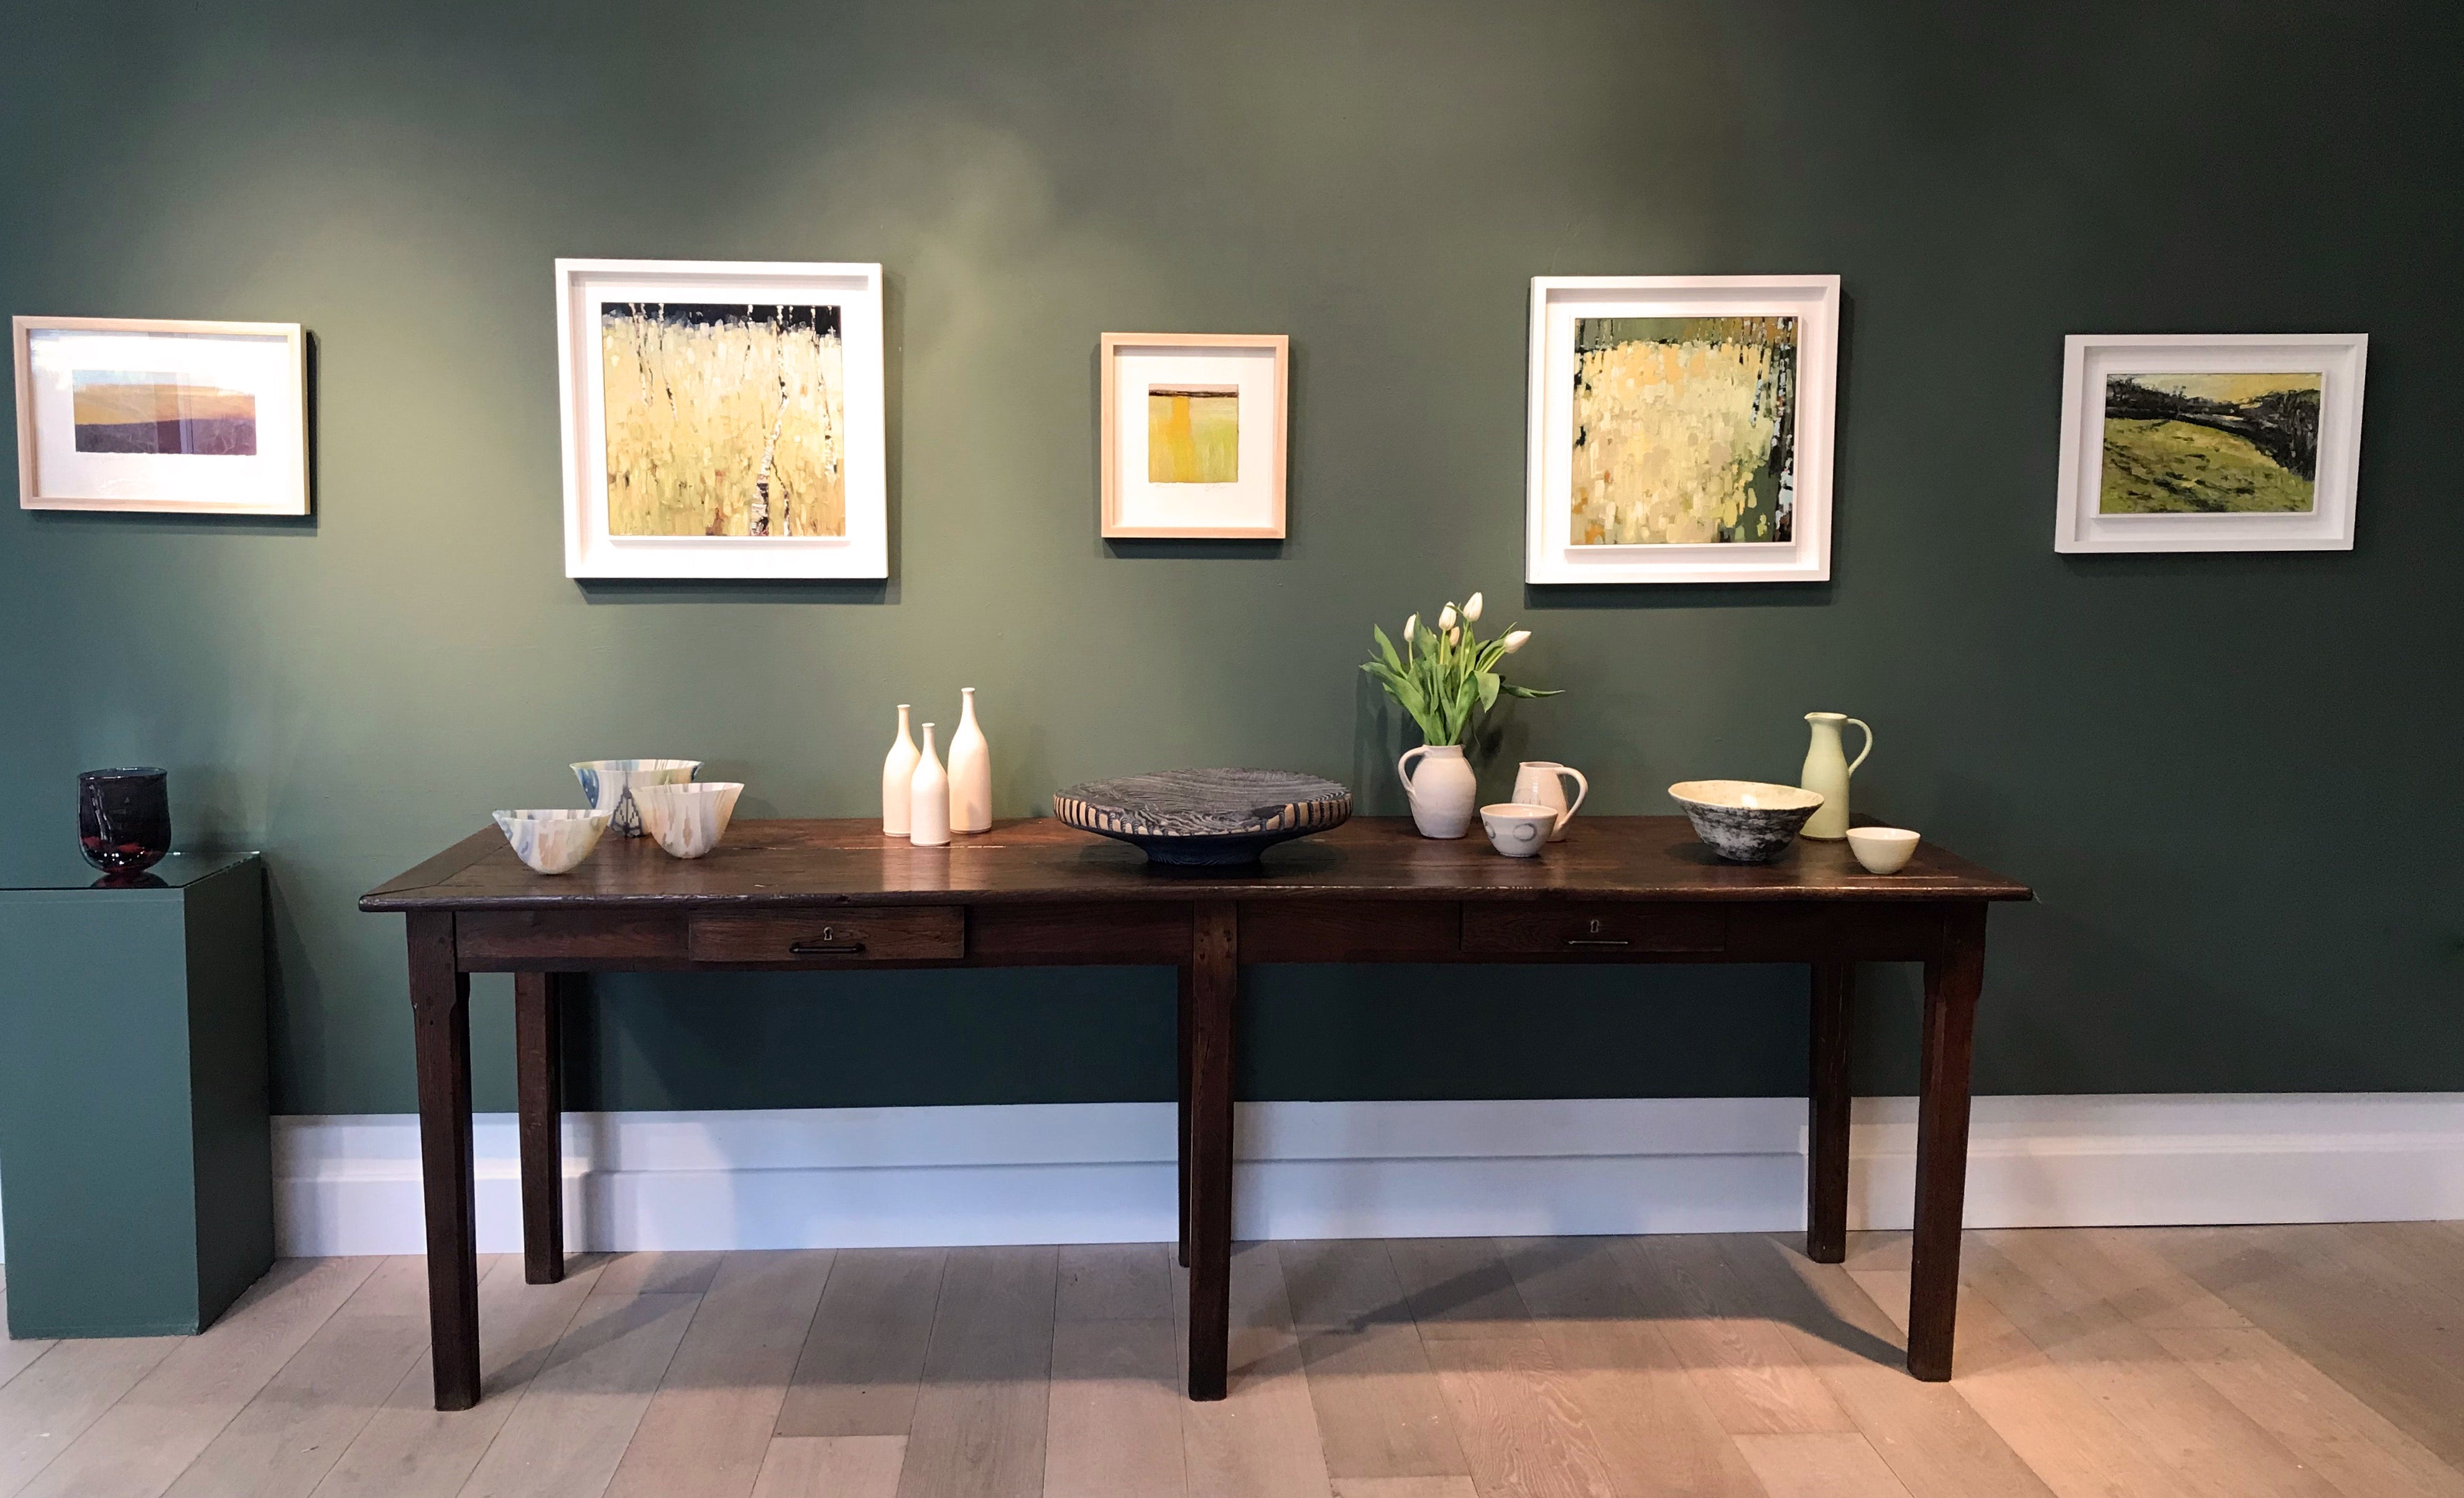 exhibition, paintings, craft, gallery